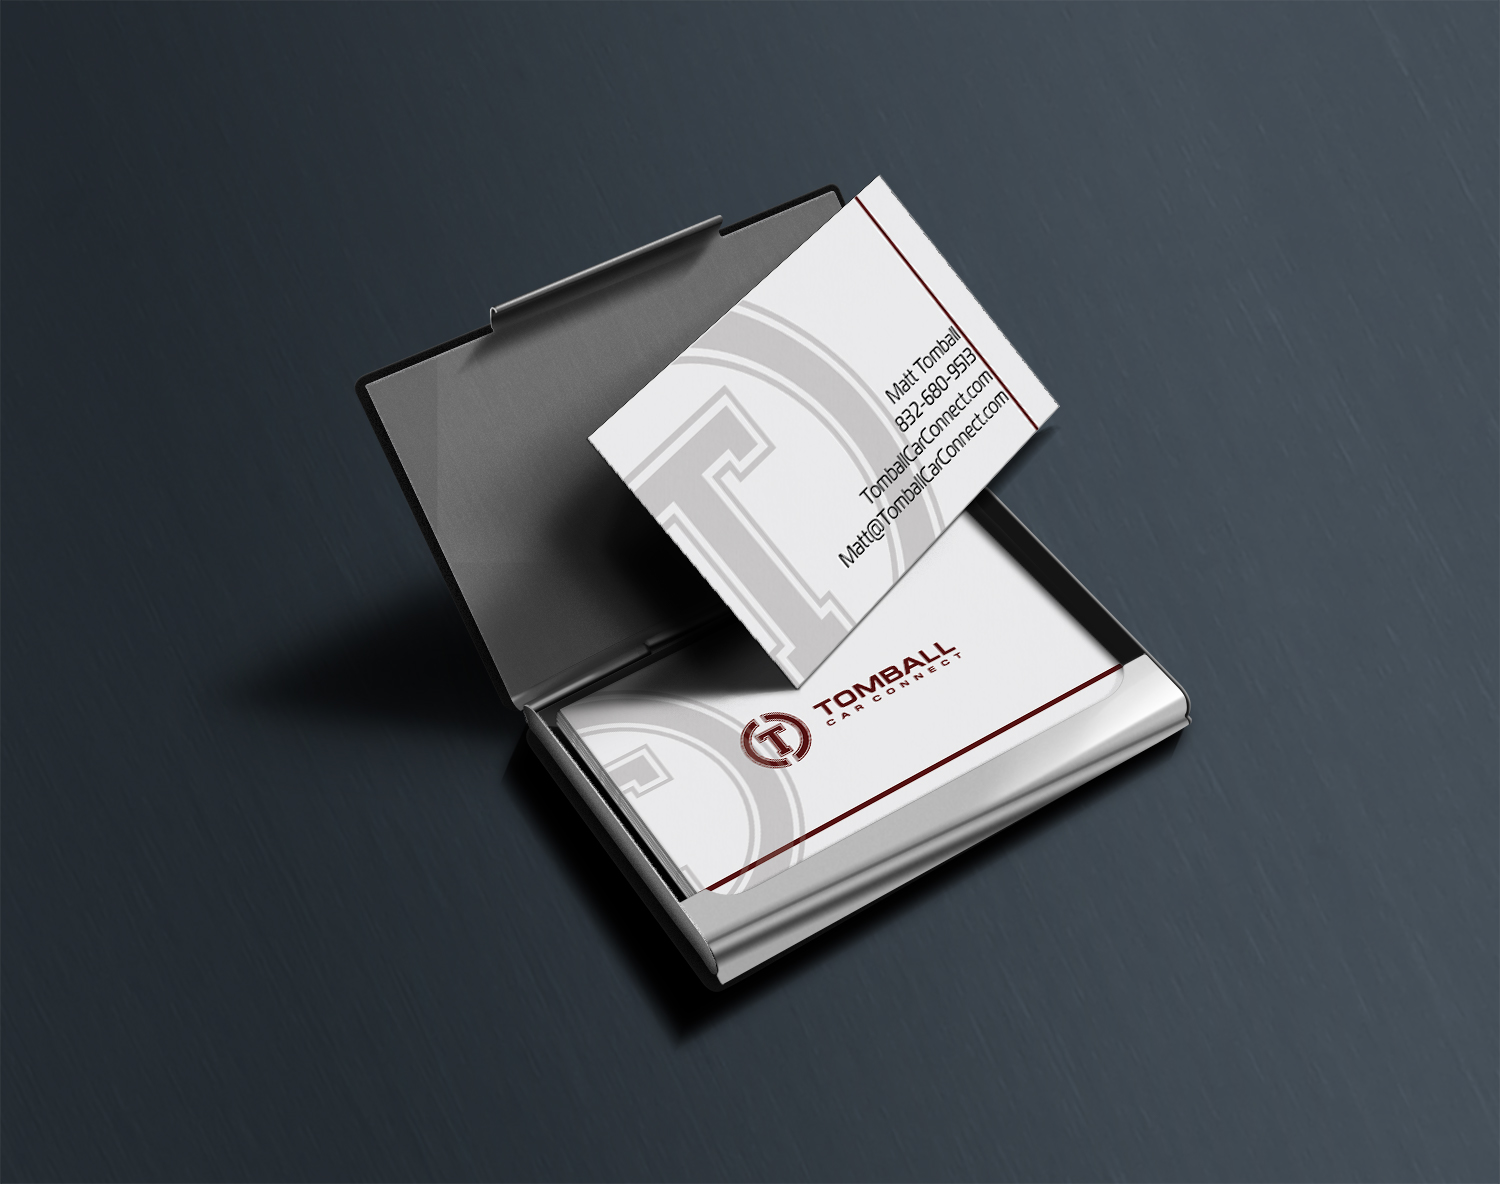 Modern professional automotive business card design for mastervape business card design by jlschnees for mastervape design 13786796 reheart Choice Image